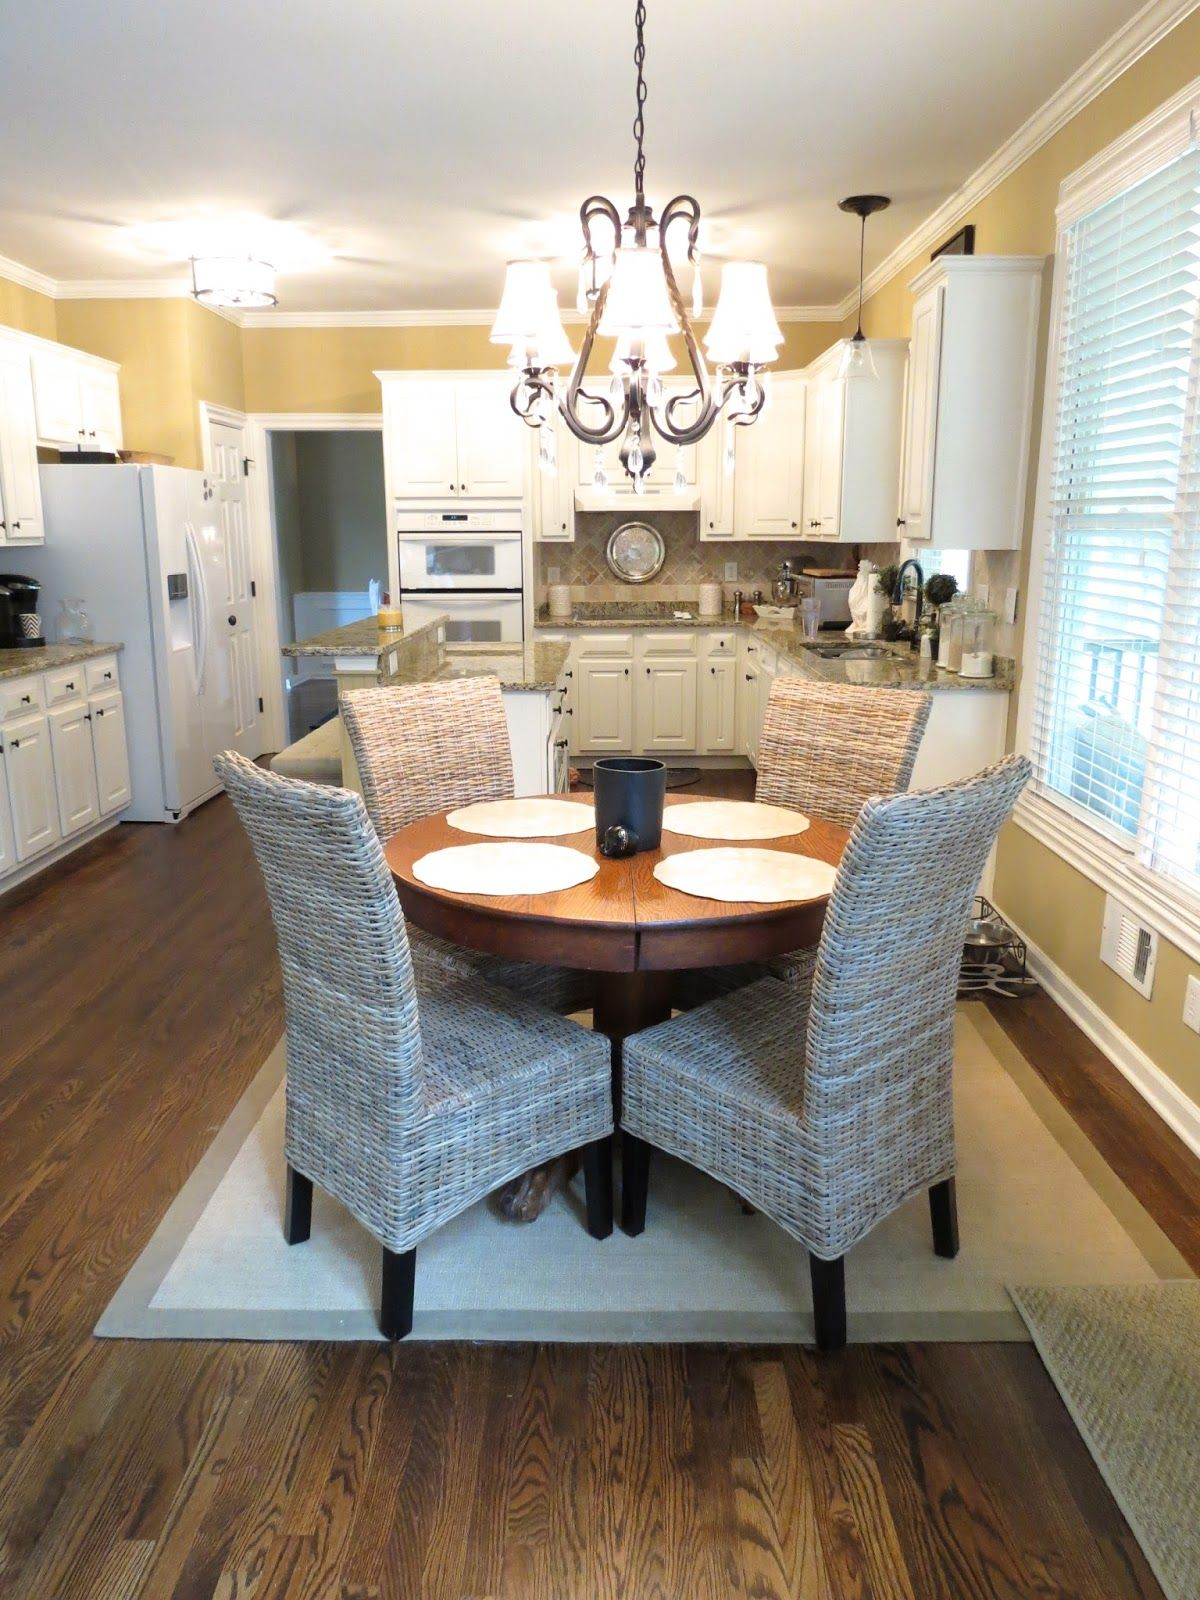 Pier 1 Kubu Chairs  Future House Ideas  Pinterest  Dining Custom Pier One Dining Room Ideas Design Ideas